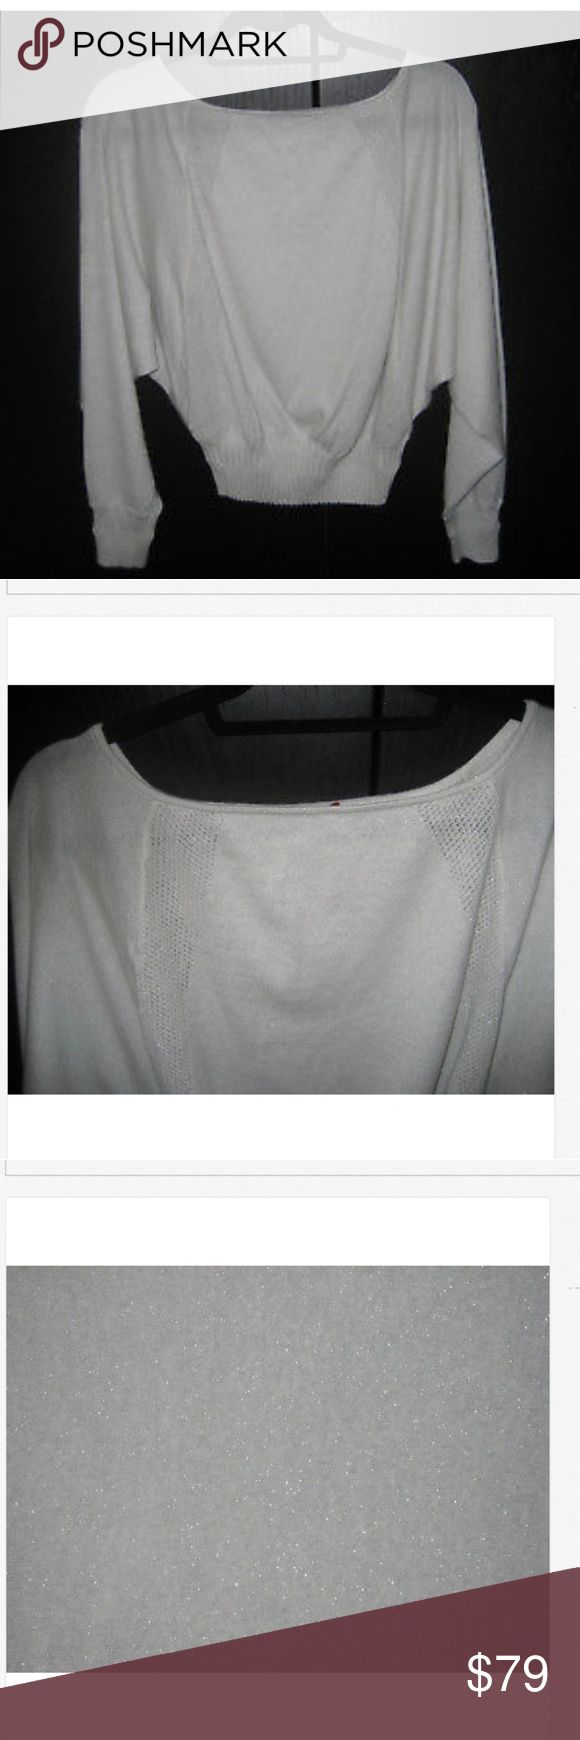 TAMARA MELLON Women's Cropped Cashmere Sweater TAMARA MELLON Women's Cropped Knit Shirt Sweater Top 84% Cashmere/10 % Metallic/6% Nylon Off White, Light Gray color. Dolman sleeve. Perforated bands in the front & back. New condition. Tamara Mellon Sweaters Crew & Scoop Necks